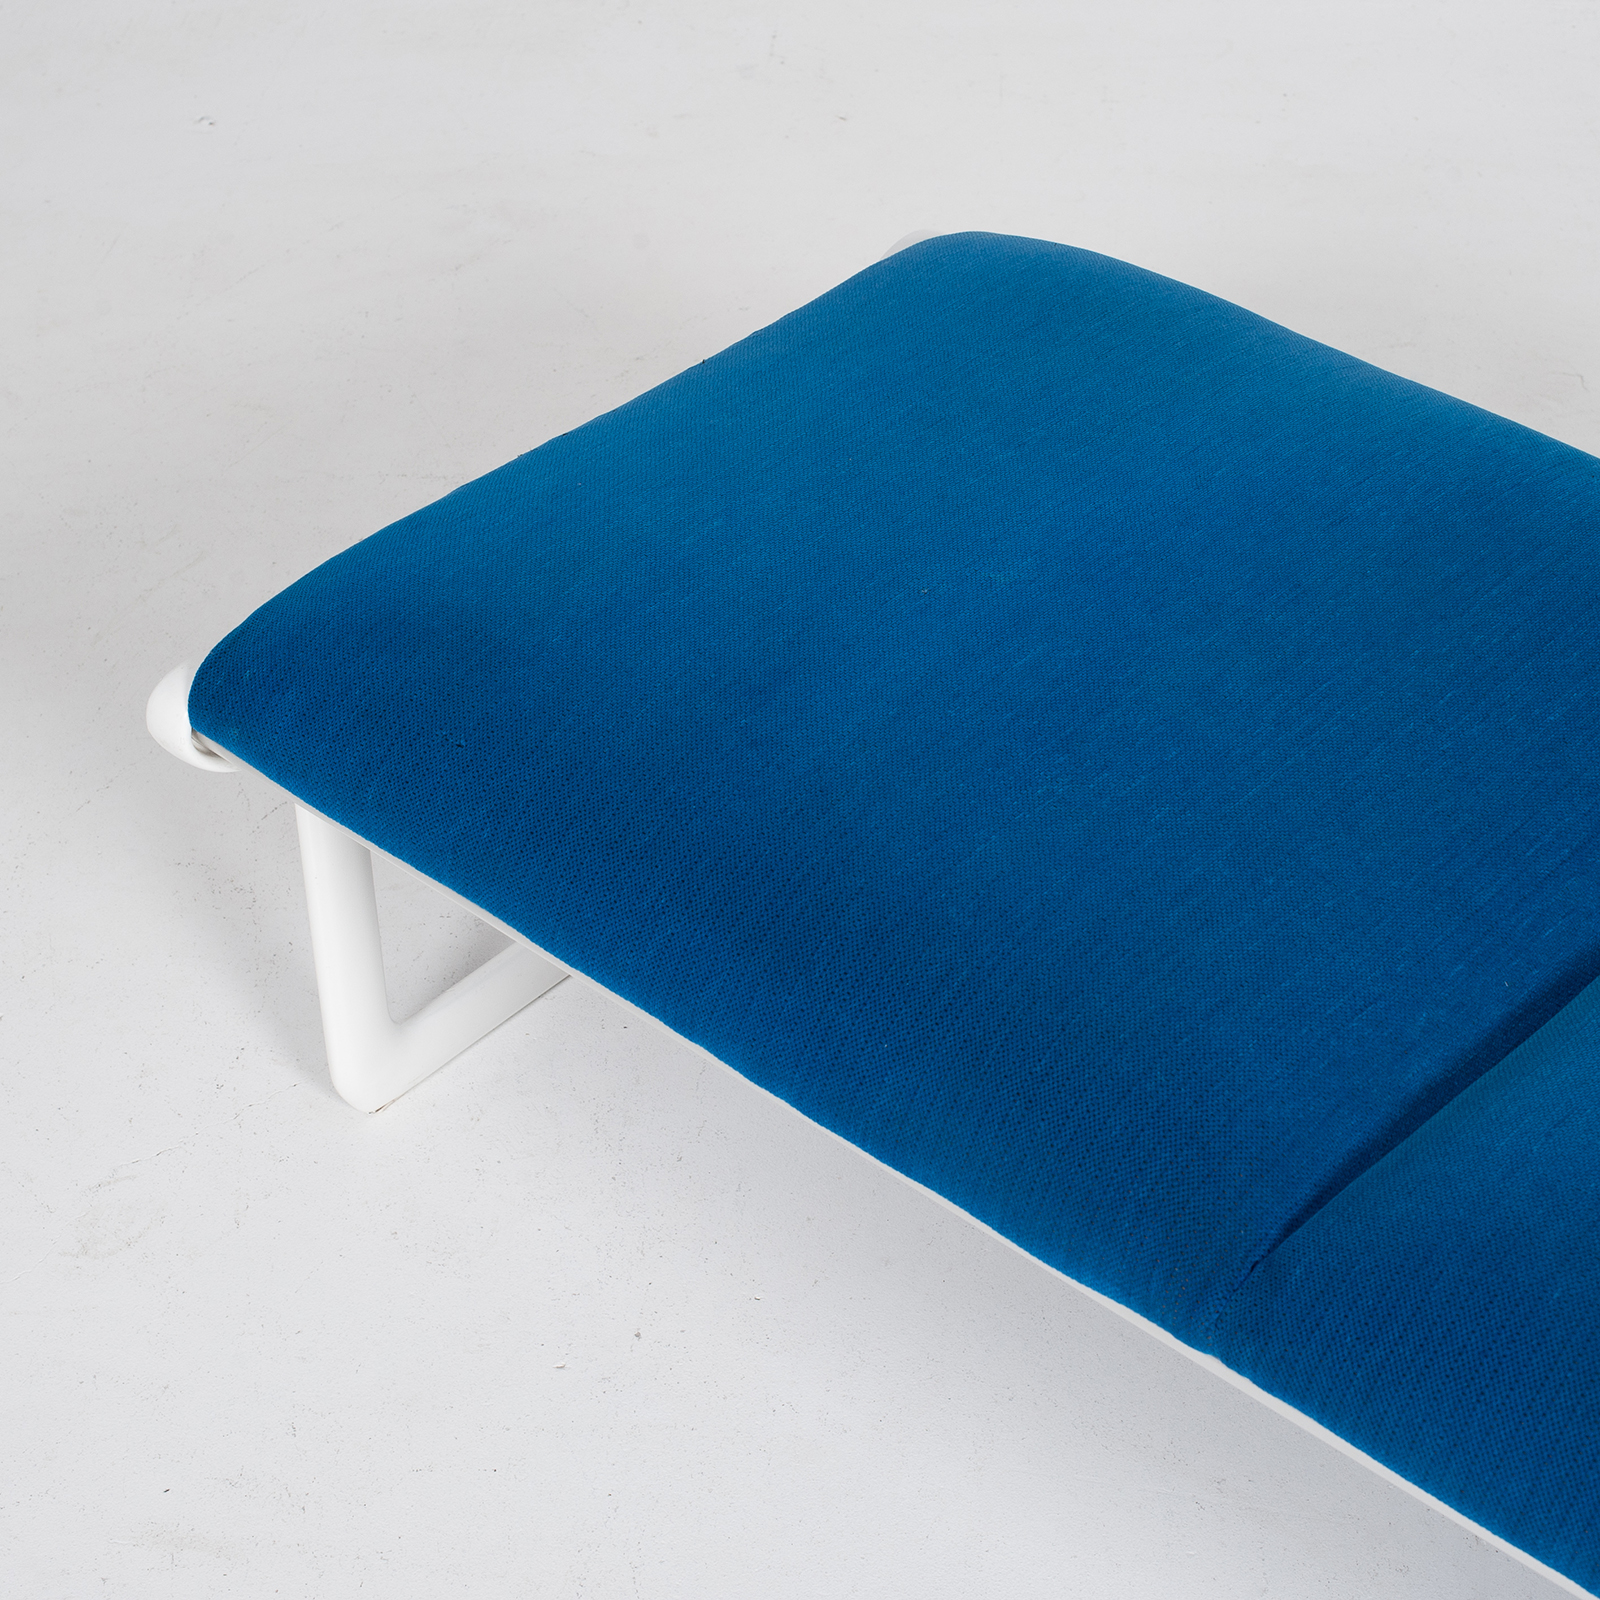 Bench By Bruce Hannah And Andrew Morrison For Knoll With Blue Upholstery, 1960s, United States 5